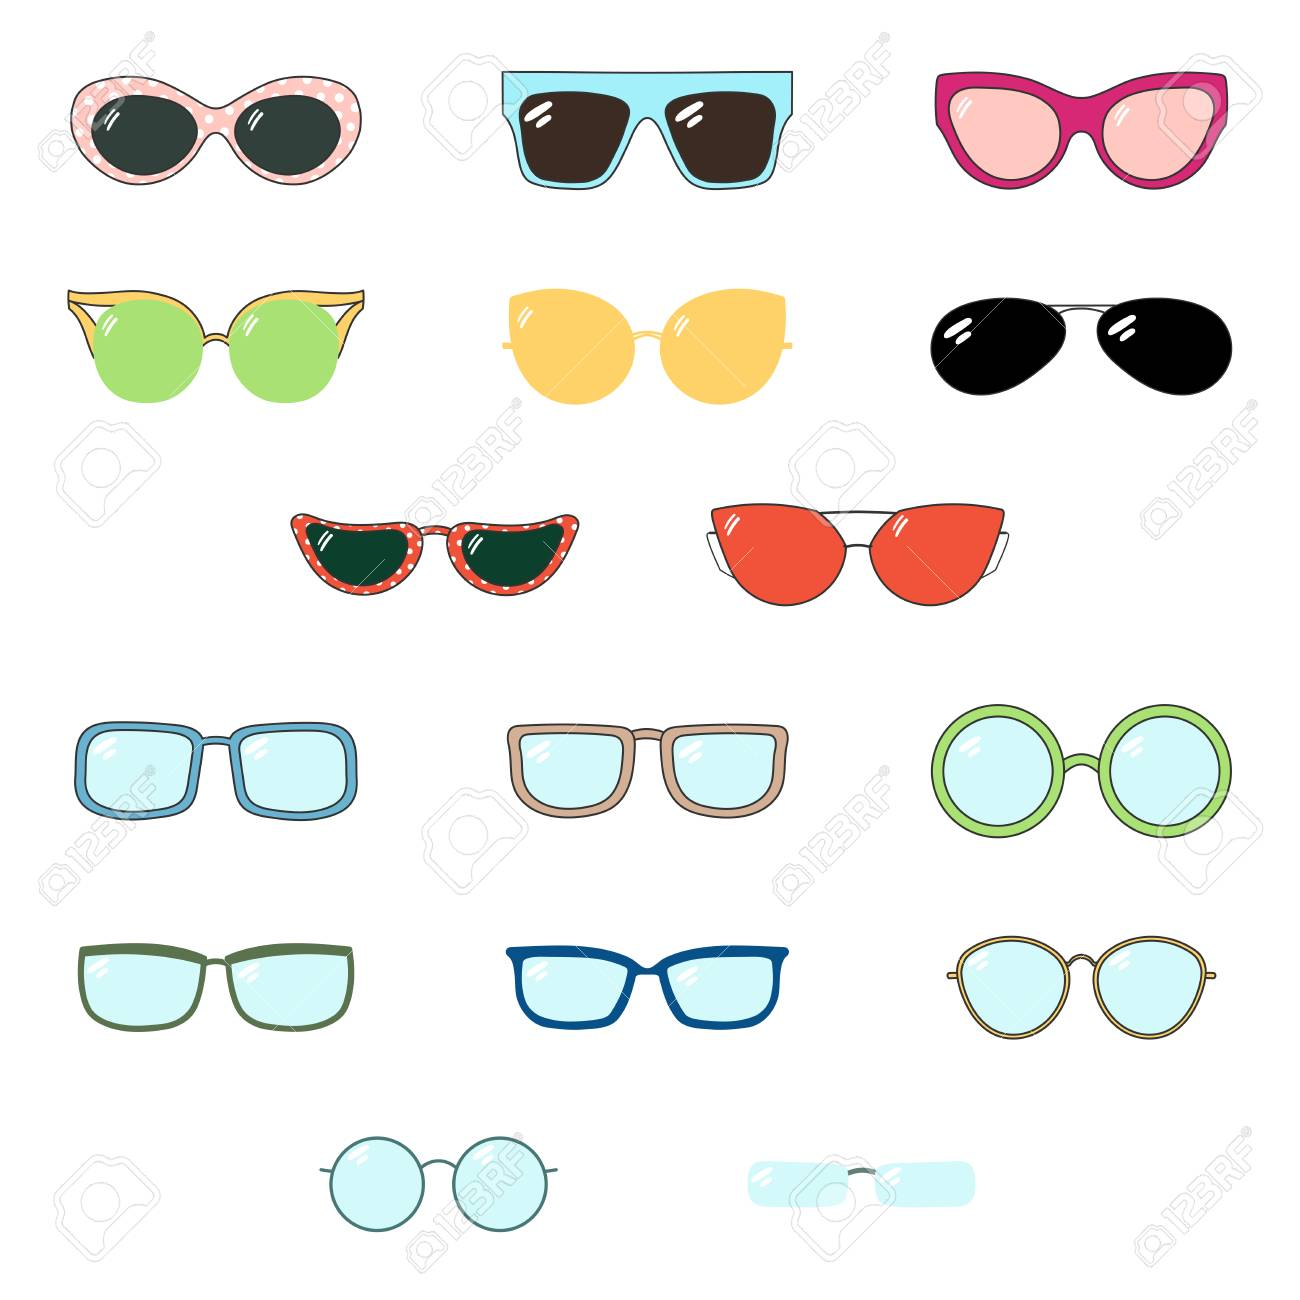 0c443b5eb77 Set of hand drawn cute cartoon glasses and sunglasses of various colours  and shapes. Isolated